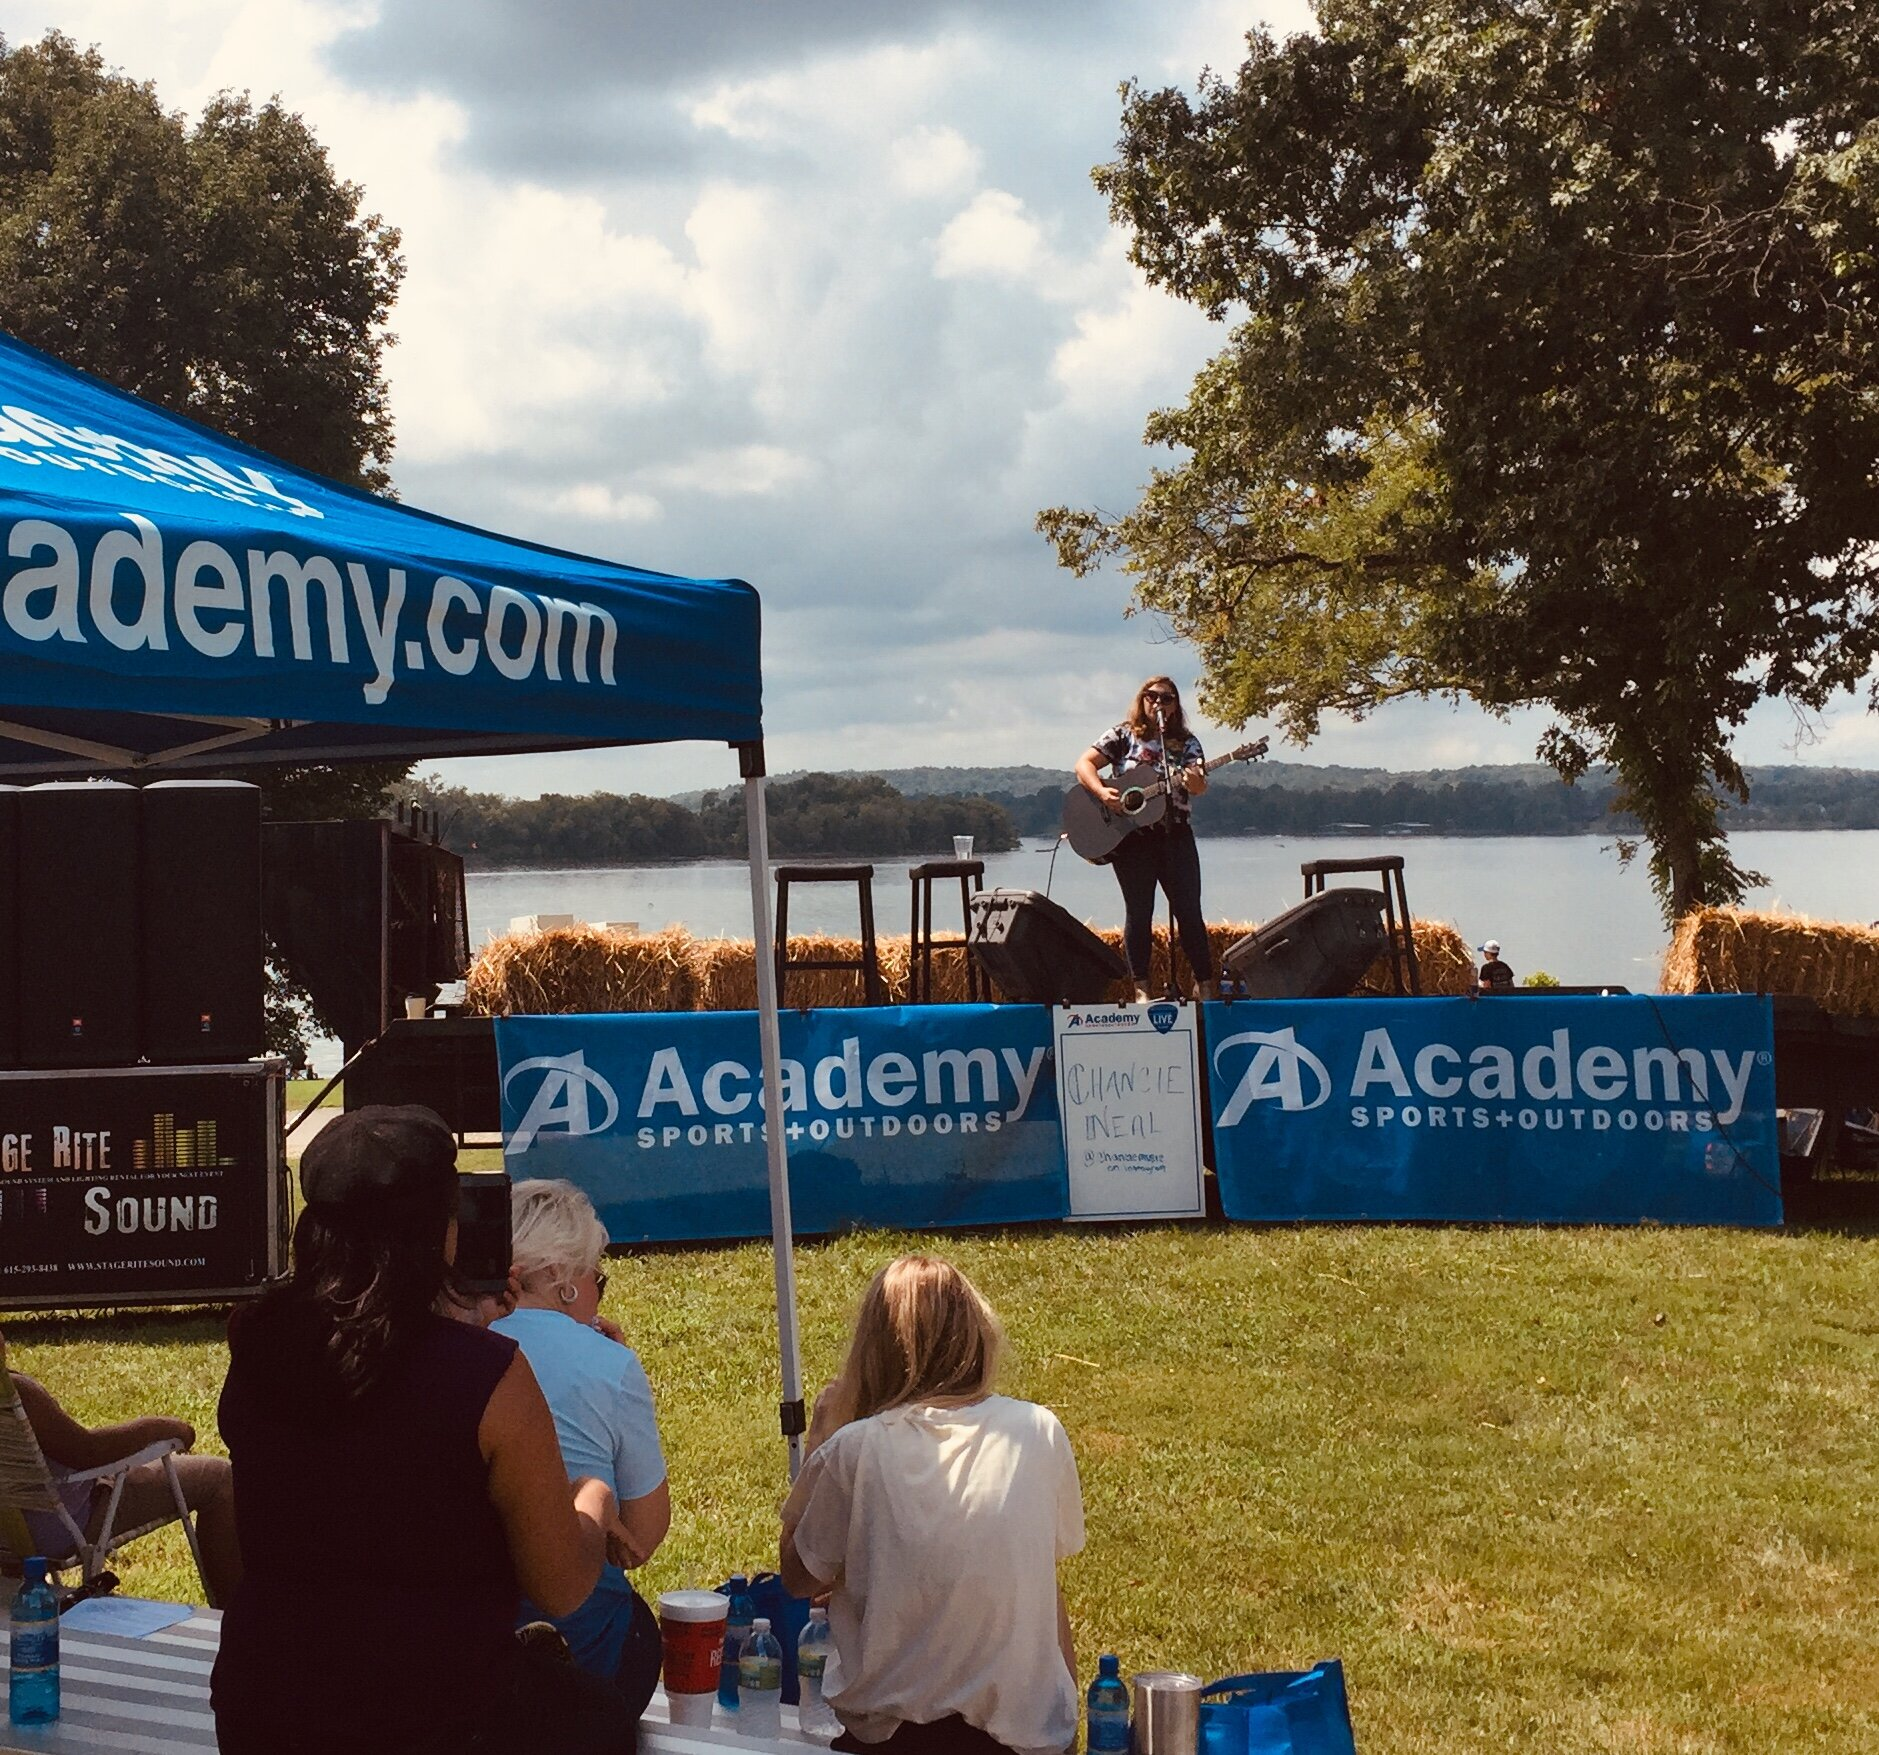 Because of her love for the outdoors, WSM Radio asked her back to entertain fans during Free Fishing Day in Gallatin. She joined Irlene Mandrell, Buddy Jewell, Joe Denim, Nick Davisson & the Moonshots, Dustin Collins and Sam Tate on the Academy Sports + Outdoors Stage.